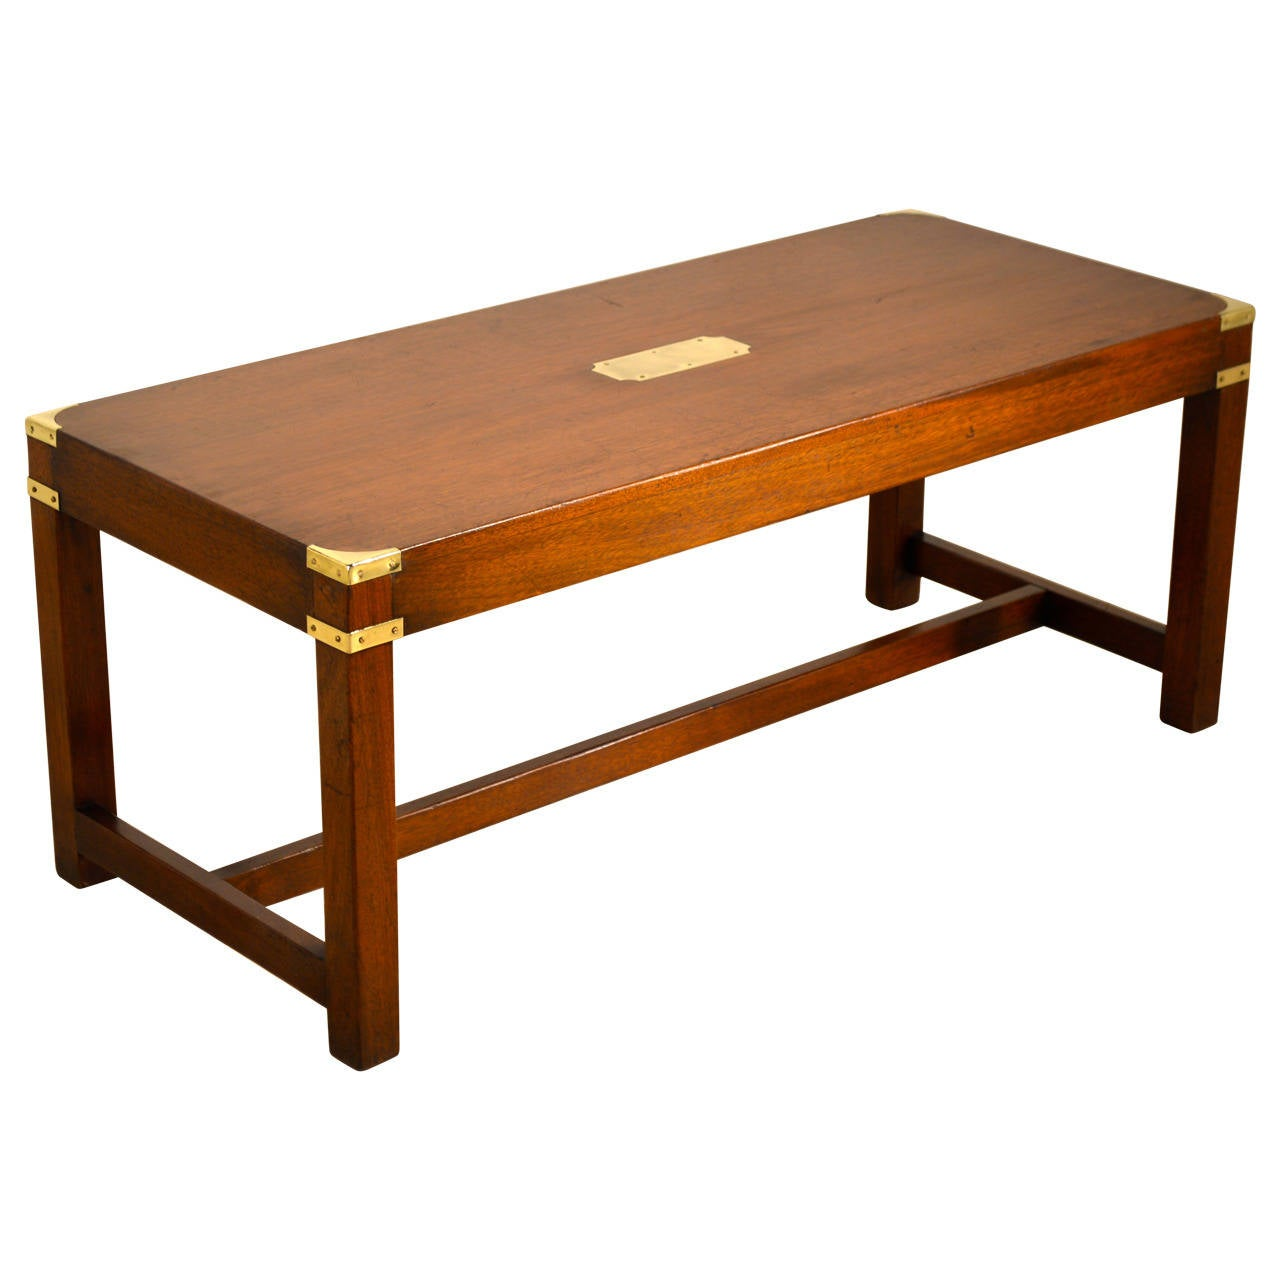 English Campaign Coffee Table, circa 1940 1 - English Campaign Coffee Table, Circa 1940 At 1stdibs